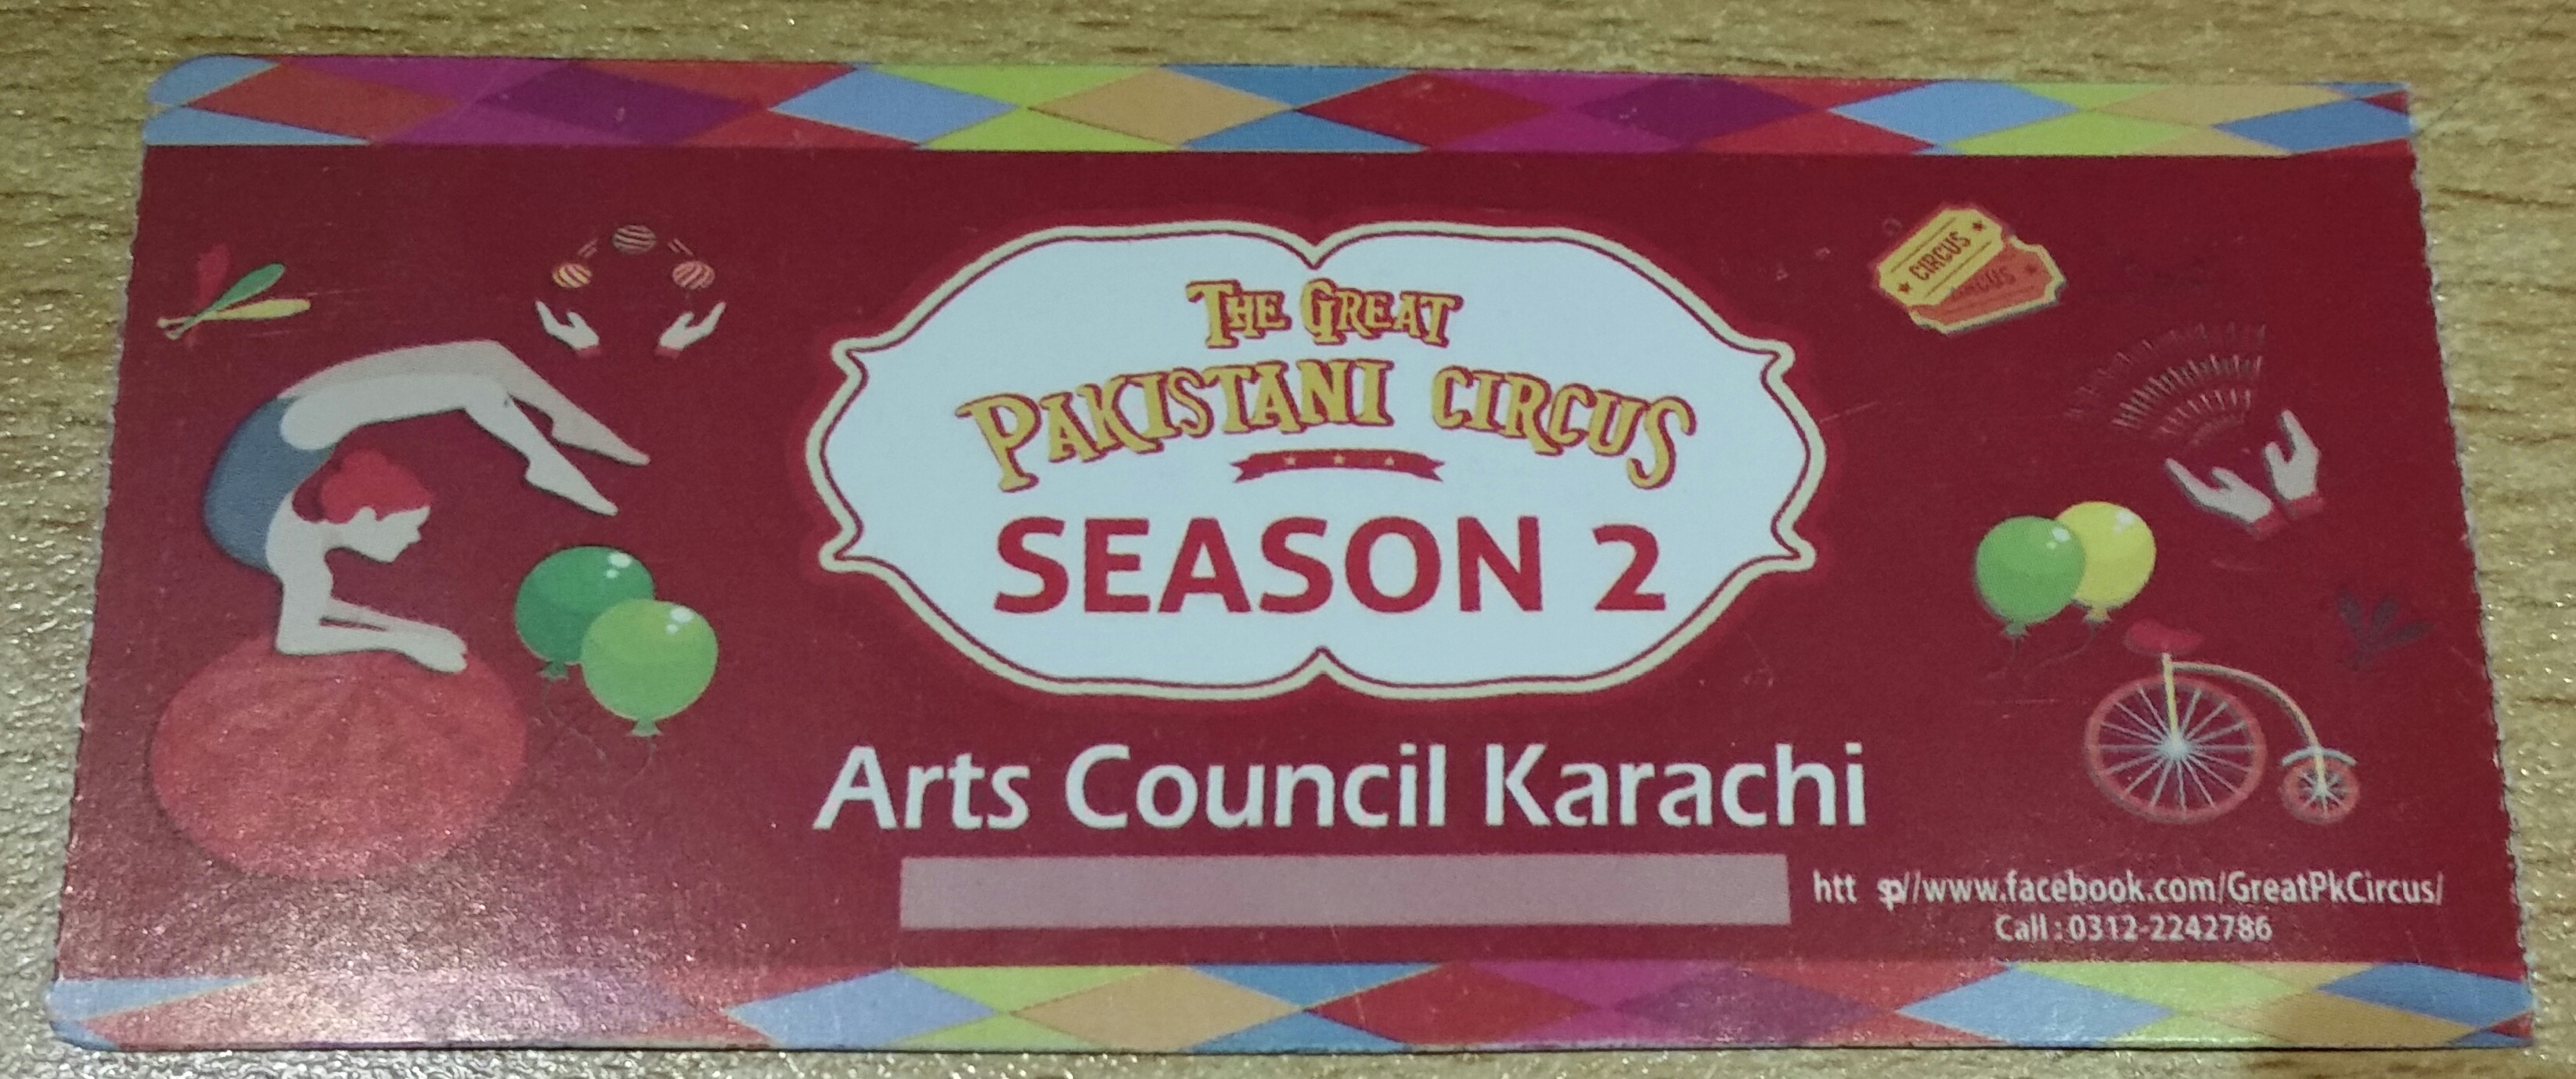 The Great Pakistani Circus - Season 2 Review